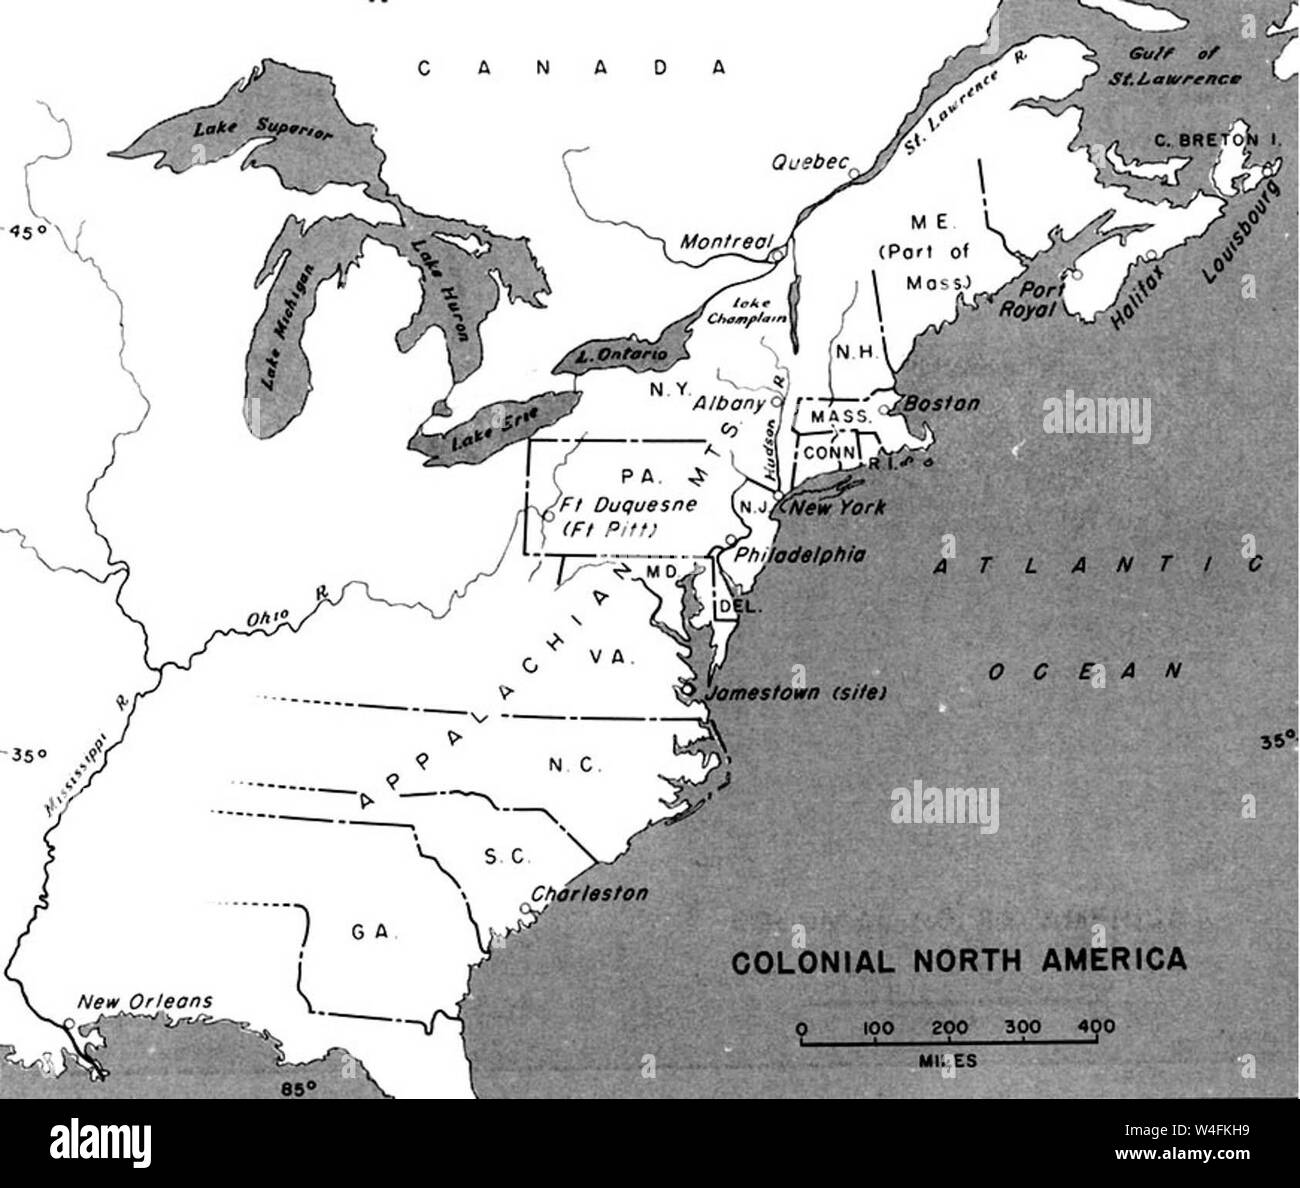 Colonial Map Of North America Stock Photo Alamy